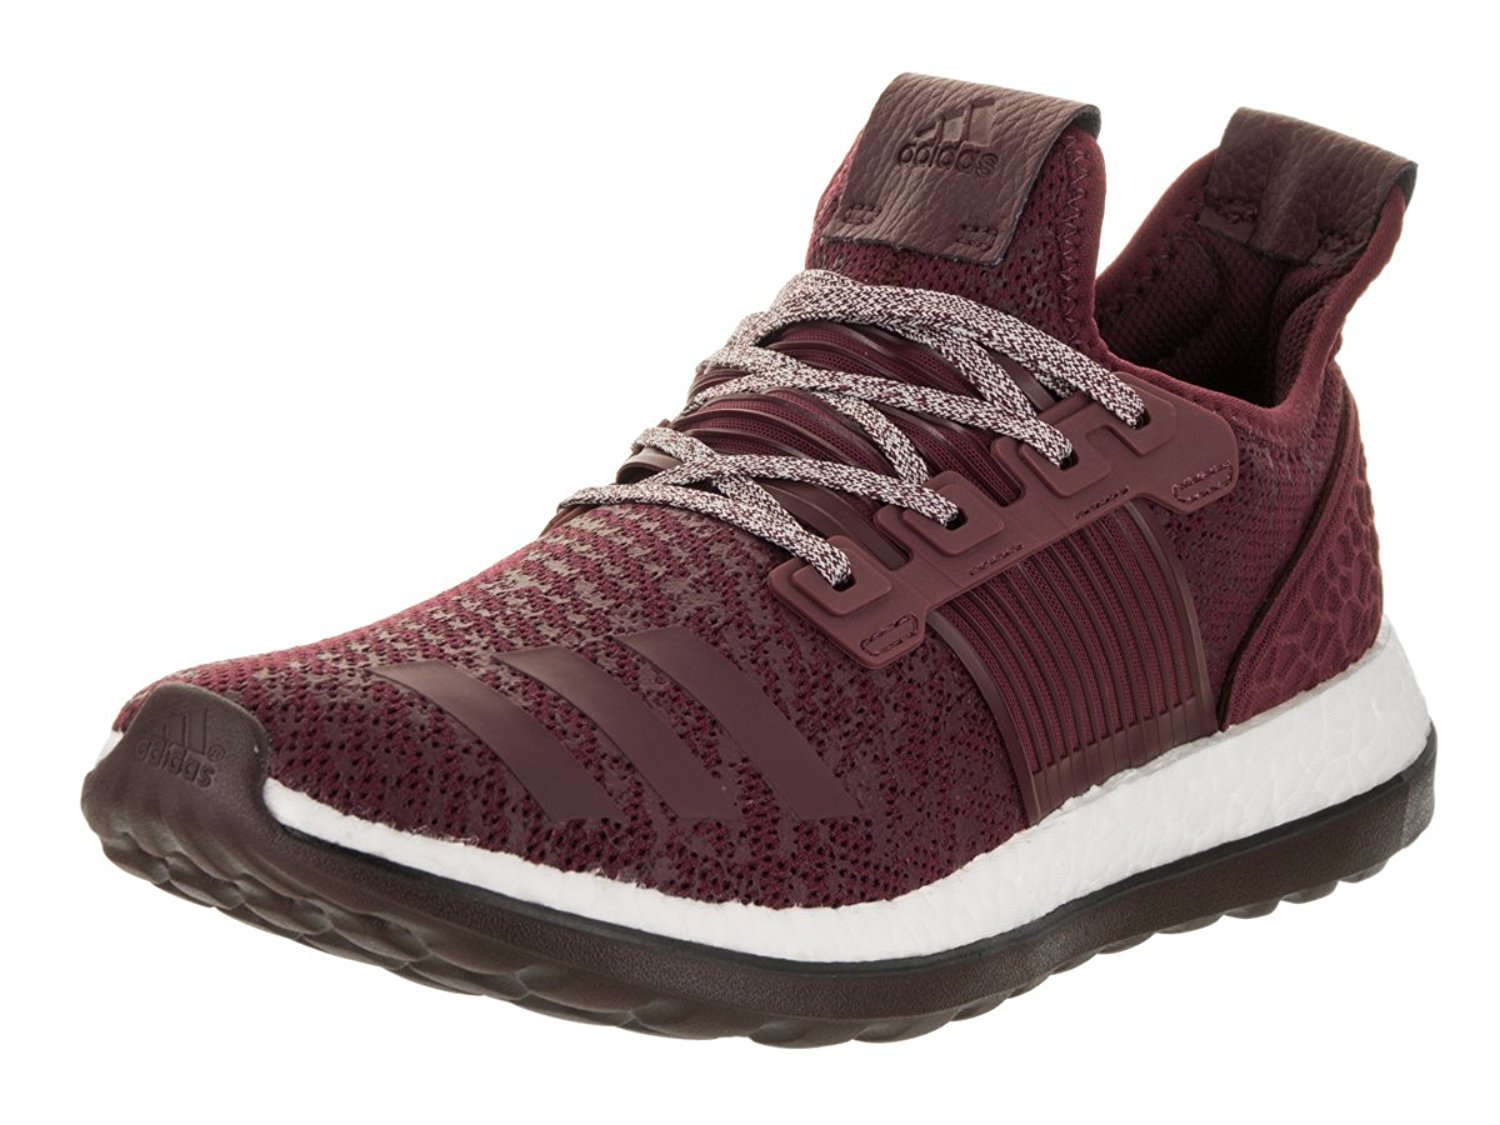 uk availability 661c7 eadd8 Running Uomo Performance Zg Adidas Pureboost IYw5R